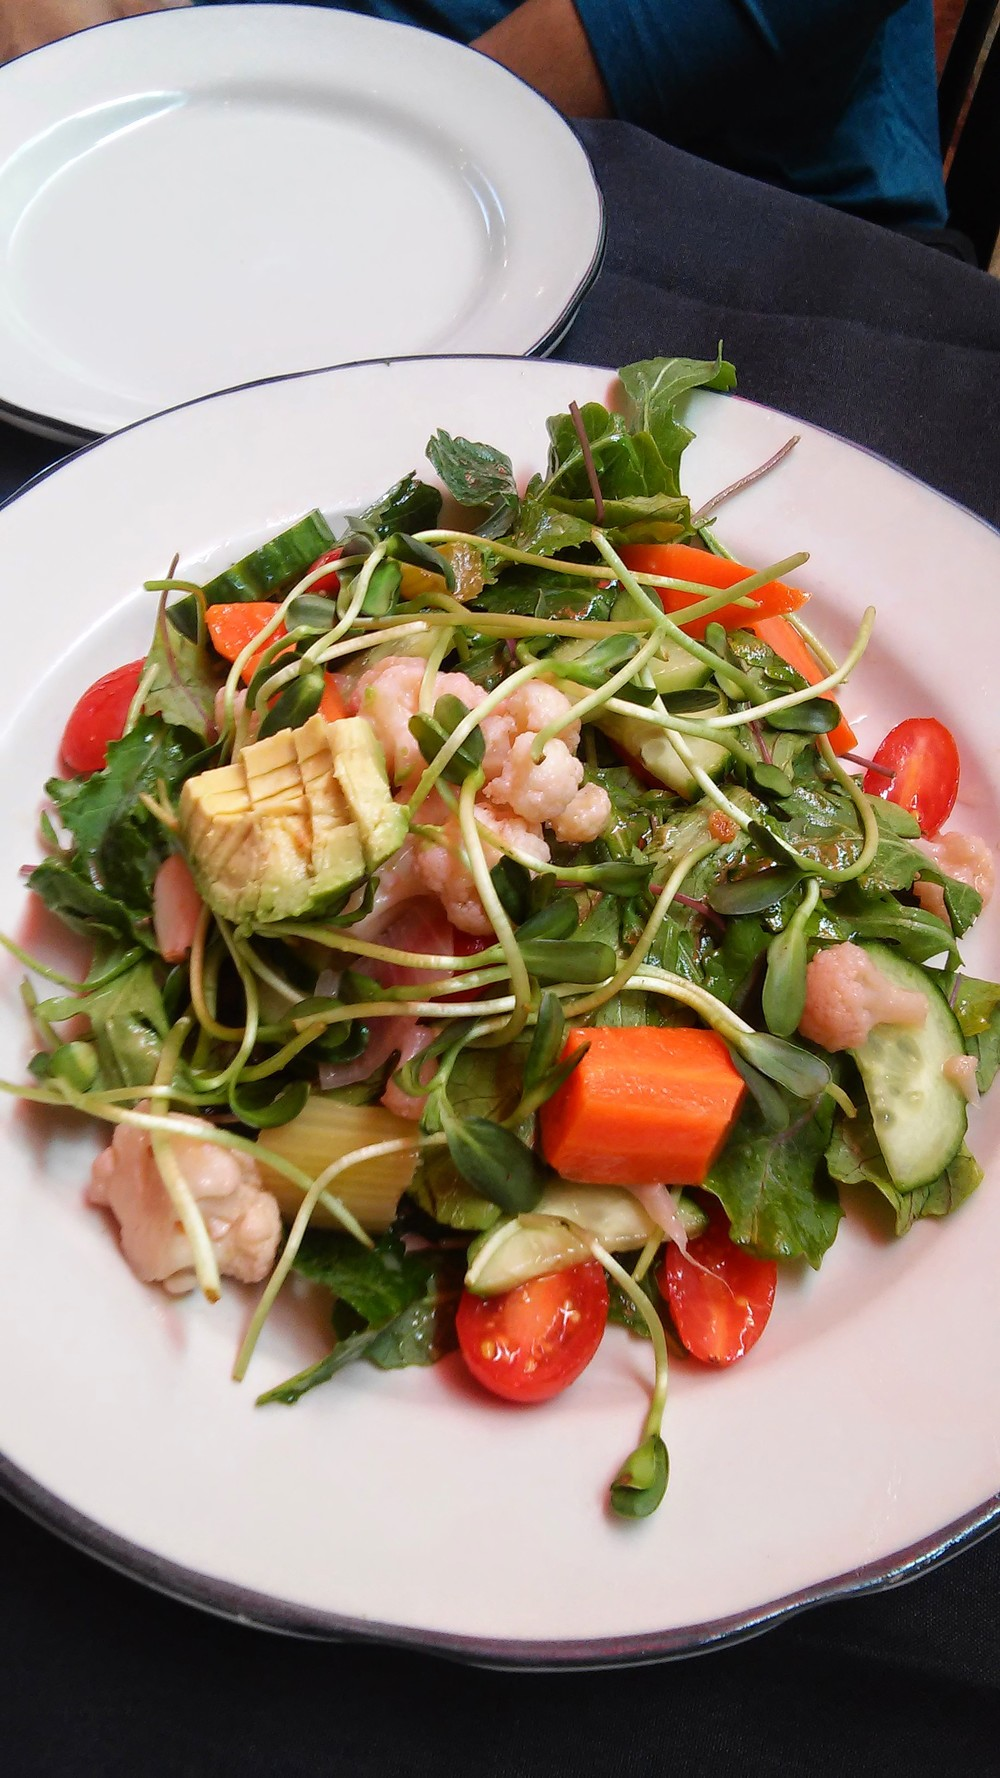 Berkeley House Salad -with seasonal greens, tomato, cucumber, pickled red onions, sunflower sprouts, croutons & simple lemon vinaigrette